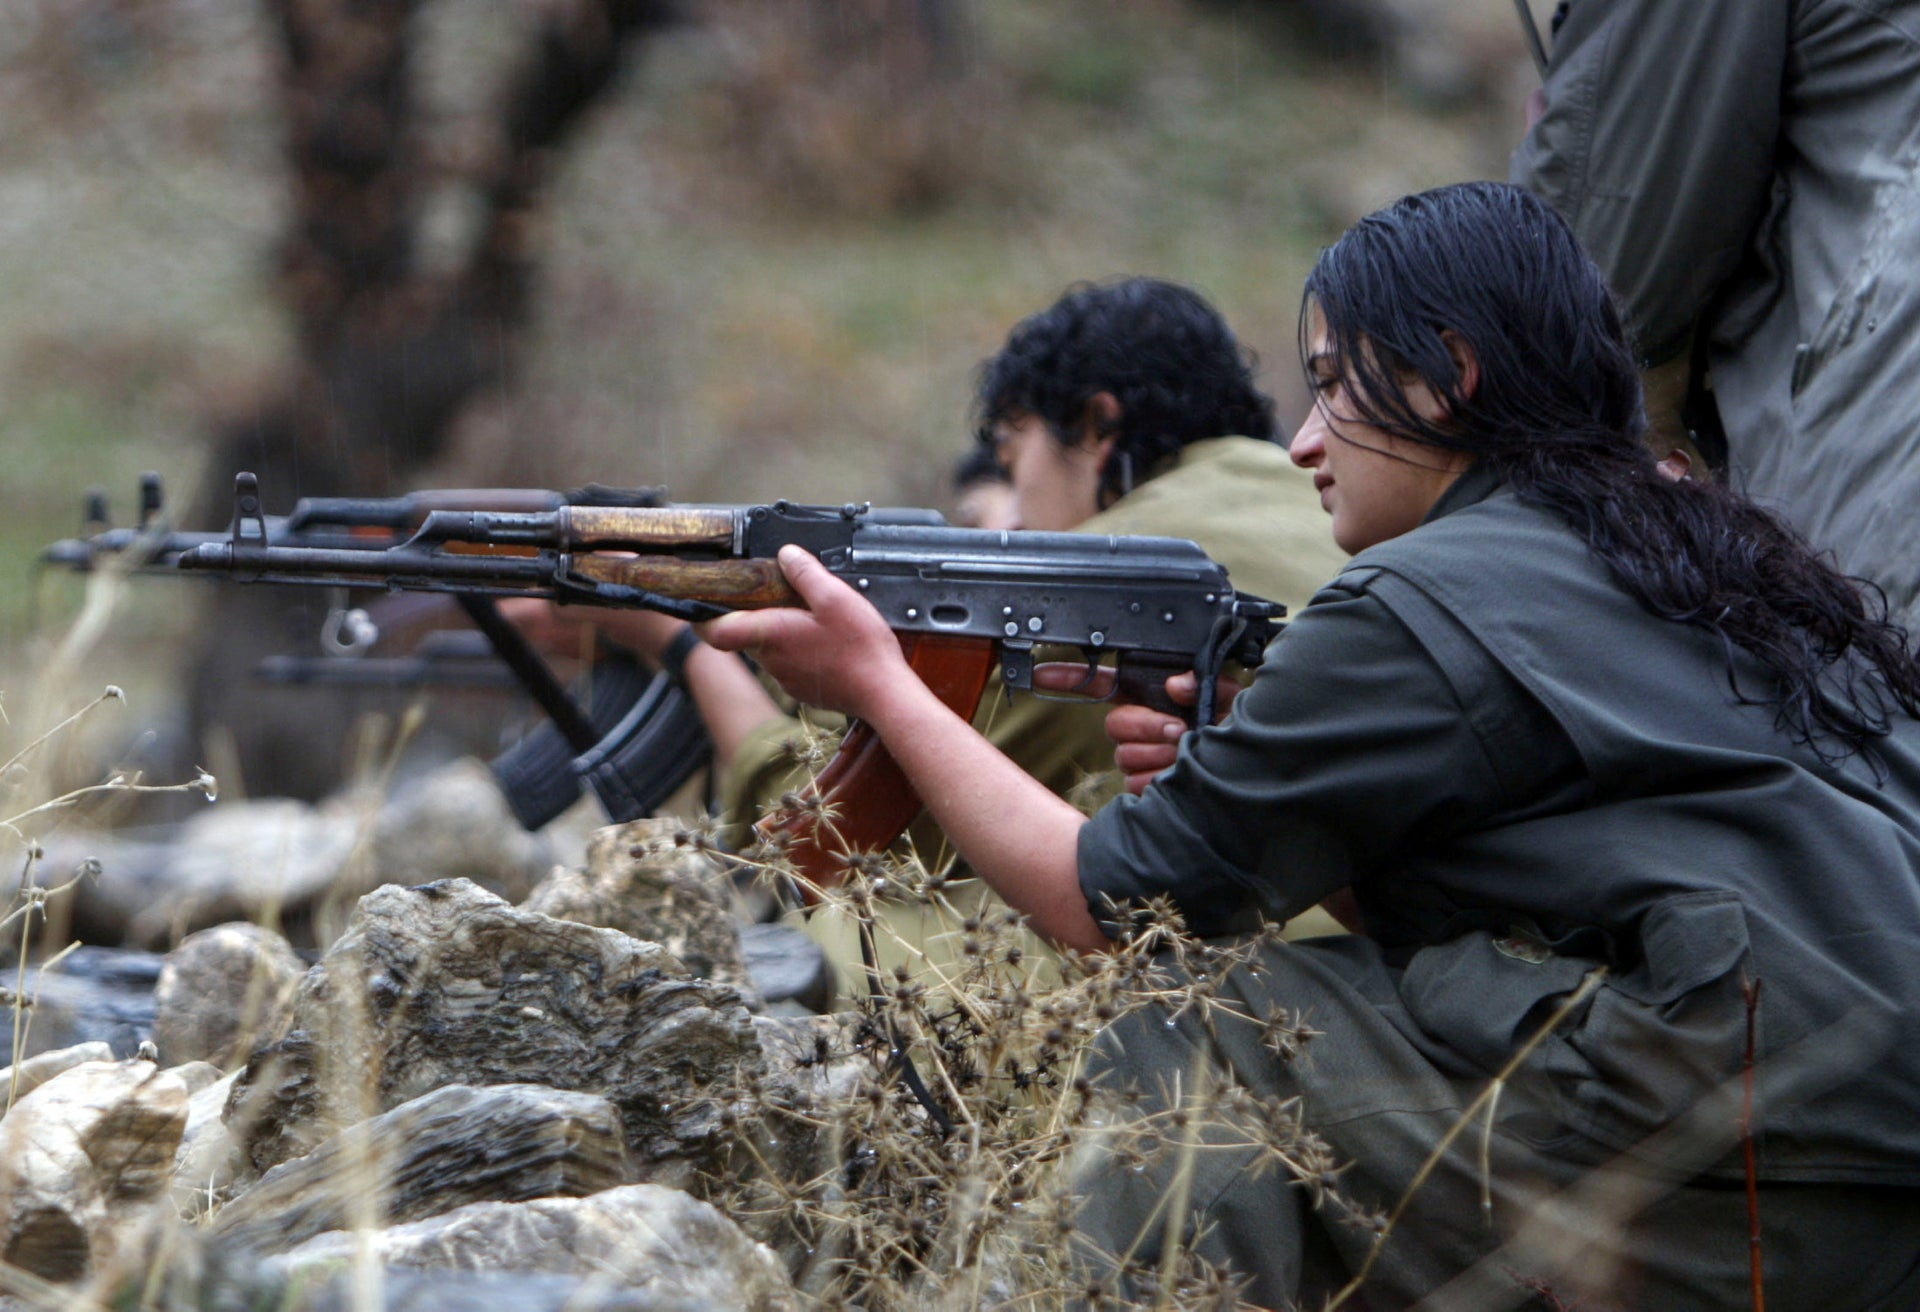 A member of PJAK trains on a weapon at the group's camp in the Qandil mountains in northern Iraq, December 18, 2009.